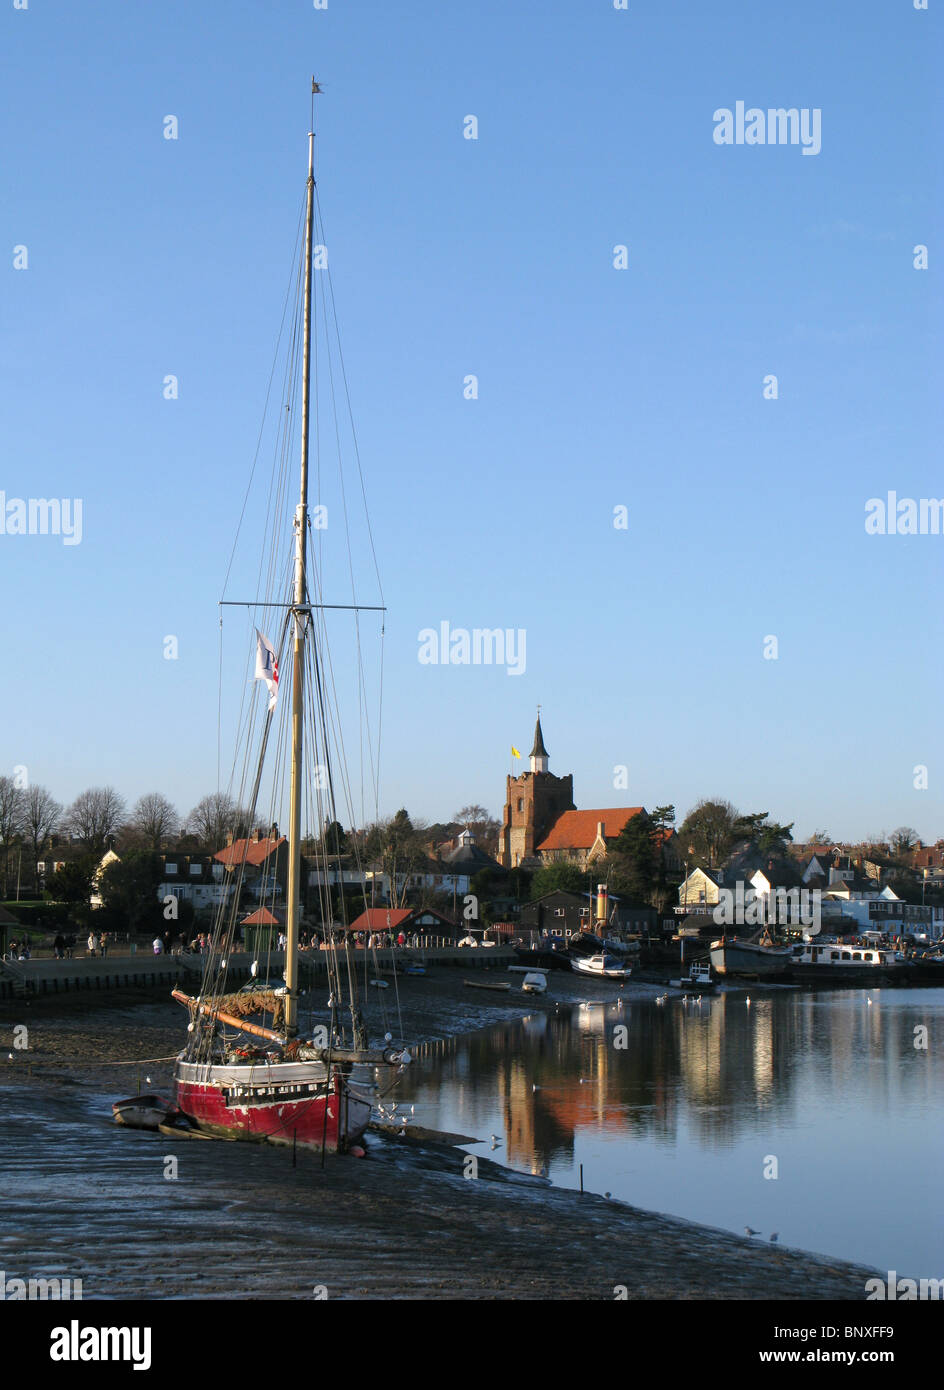 The river Blackwater in Maldon, Essex - Stock Image